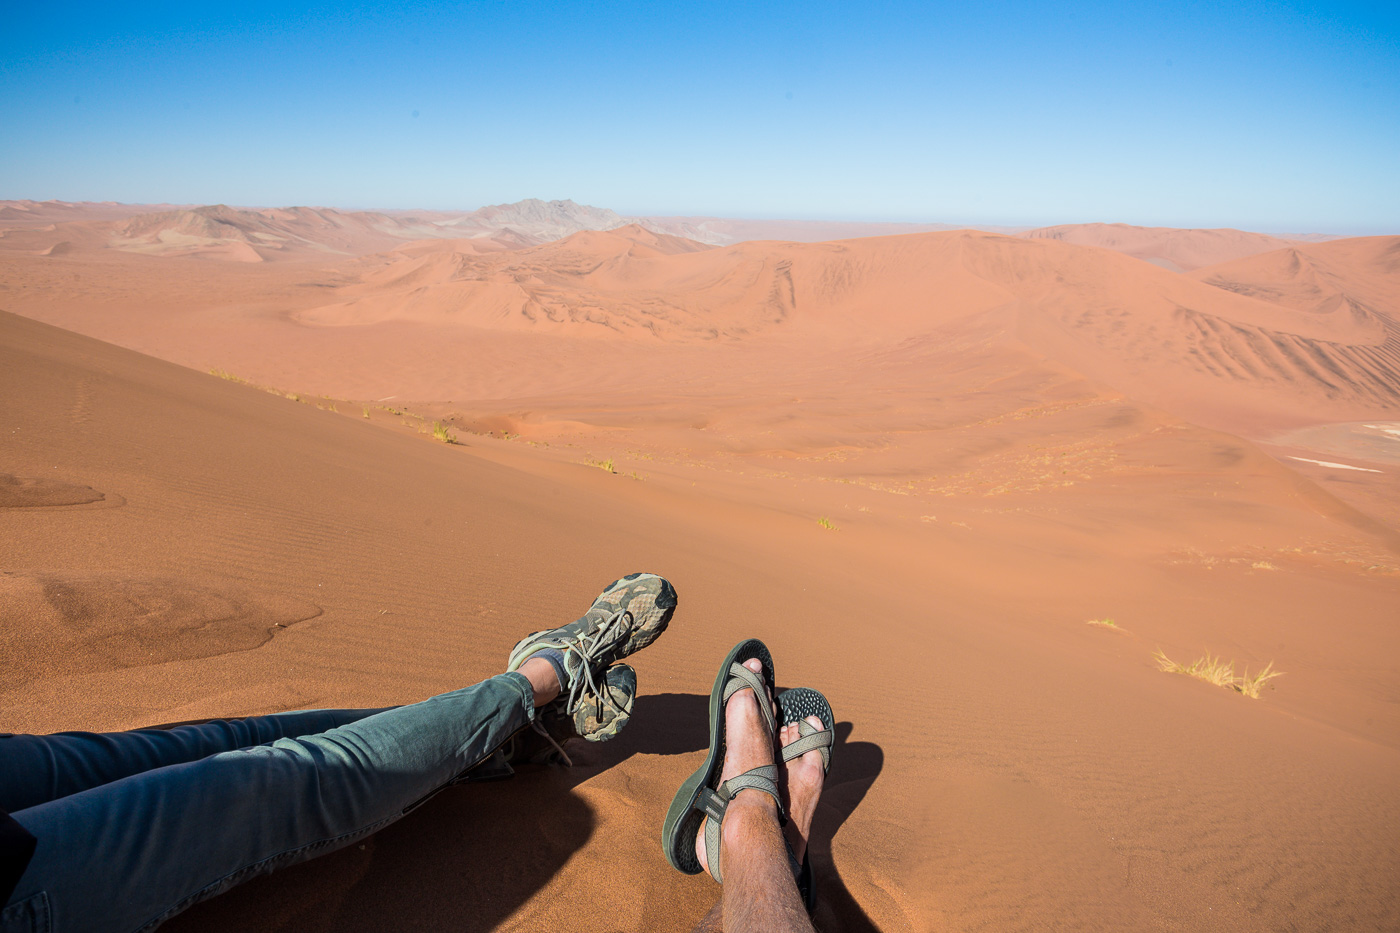 Namibia Self Drive Safari additionally Beautiful Sea And Mountain together with Container crane additionally Yamaha Vc7sg Violoncello P 28721 moreover Mitacs. on car light top